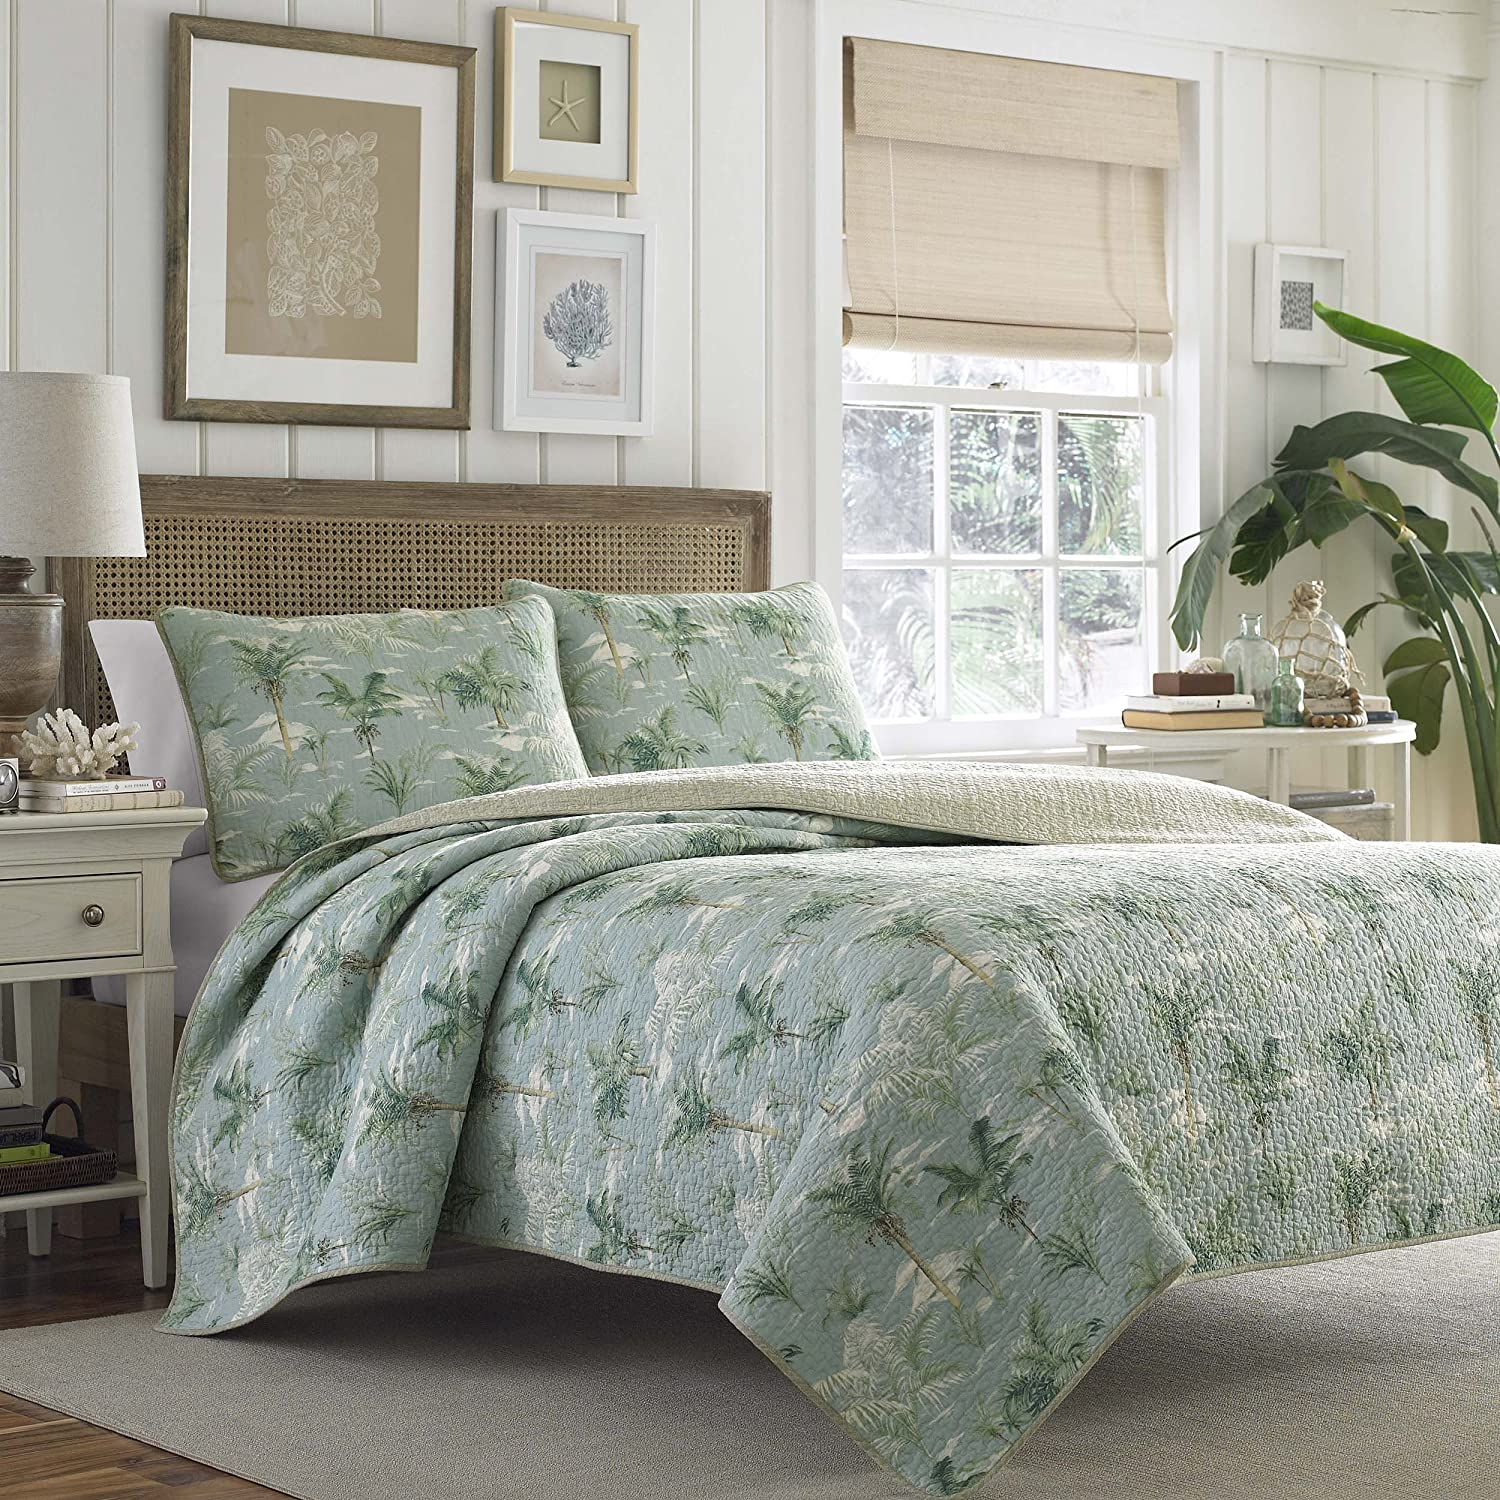 Tommy bahama bedding sets ease bedding with style tommy bahama anglers isle aloe quilt set king aloe gumiabroncs Gallery